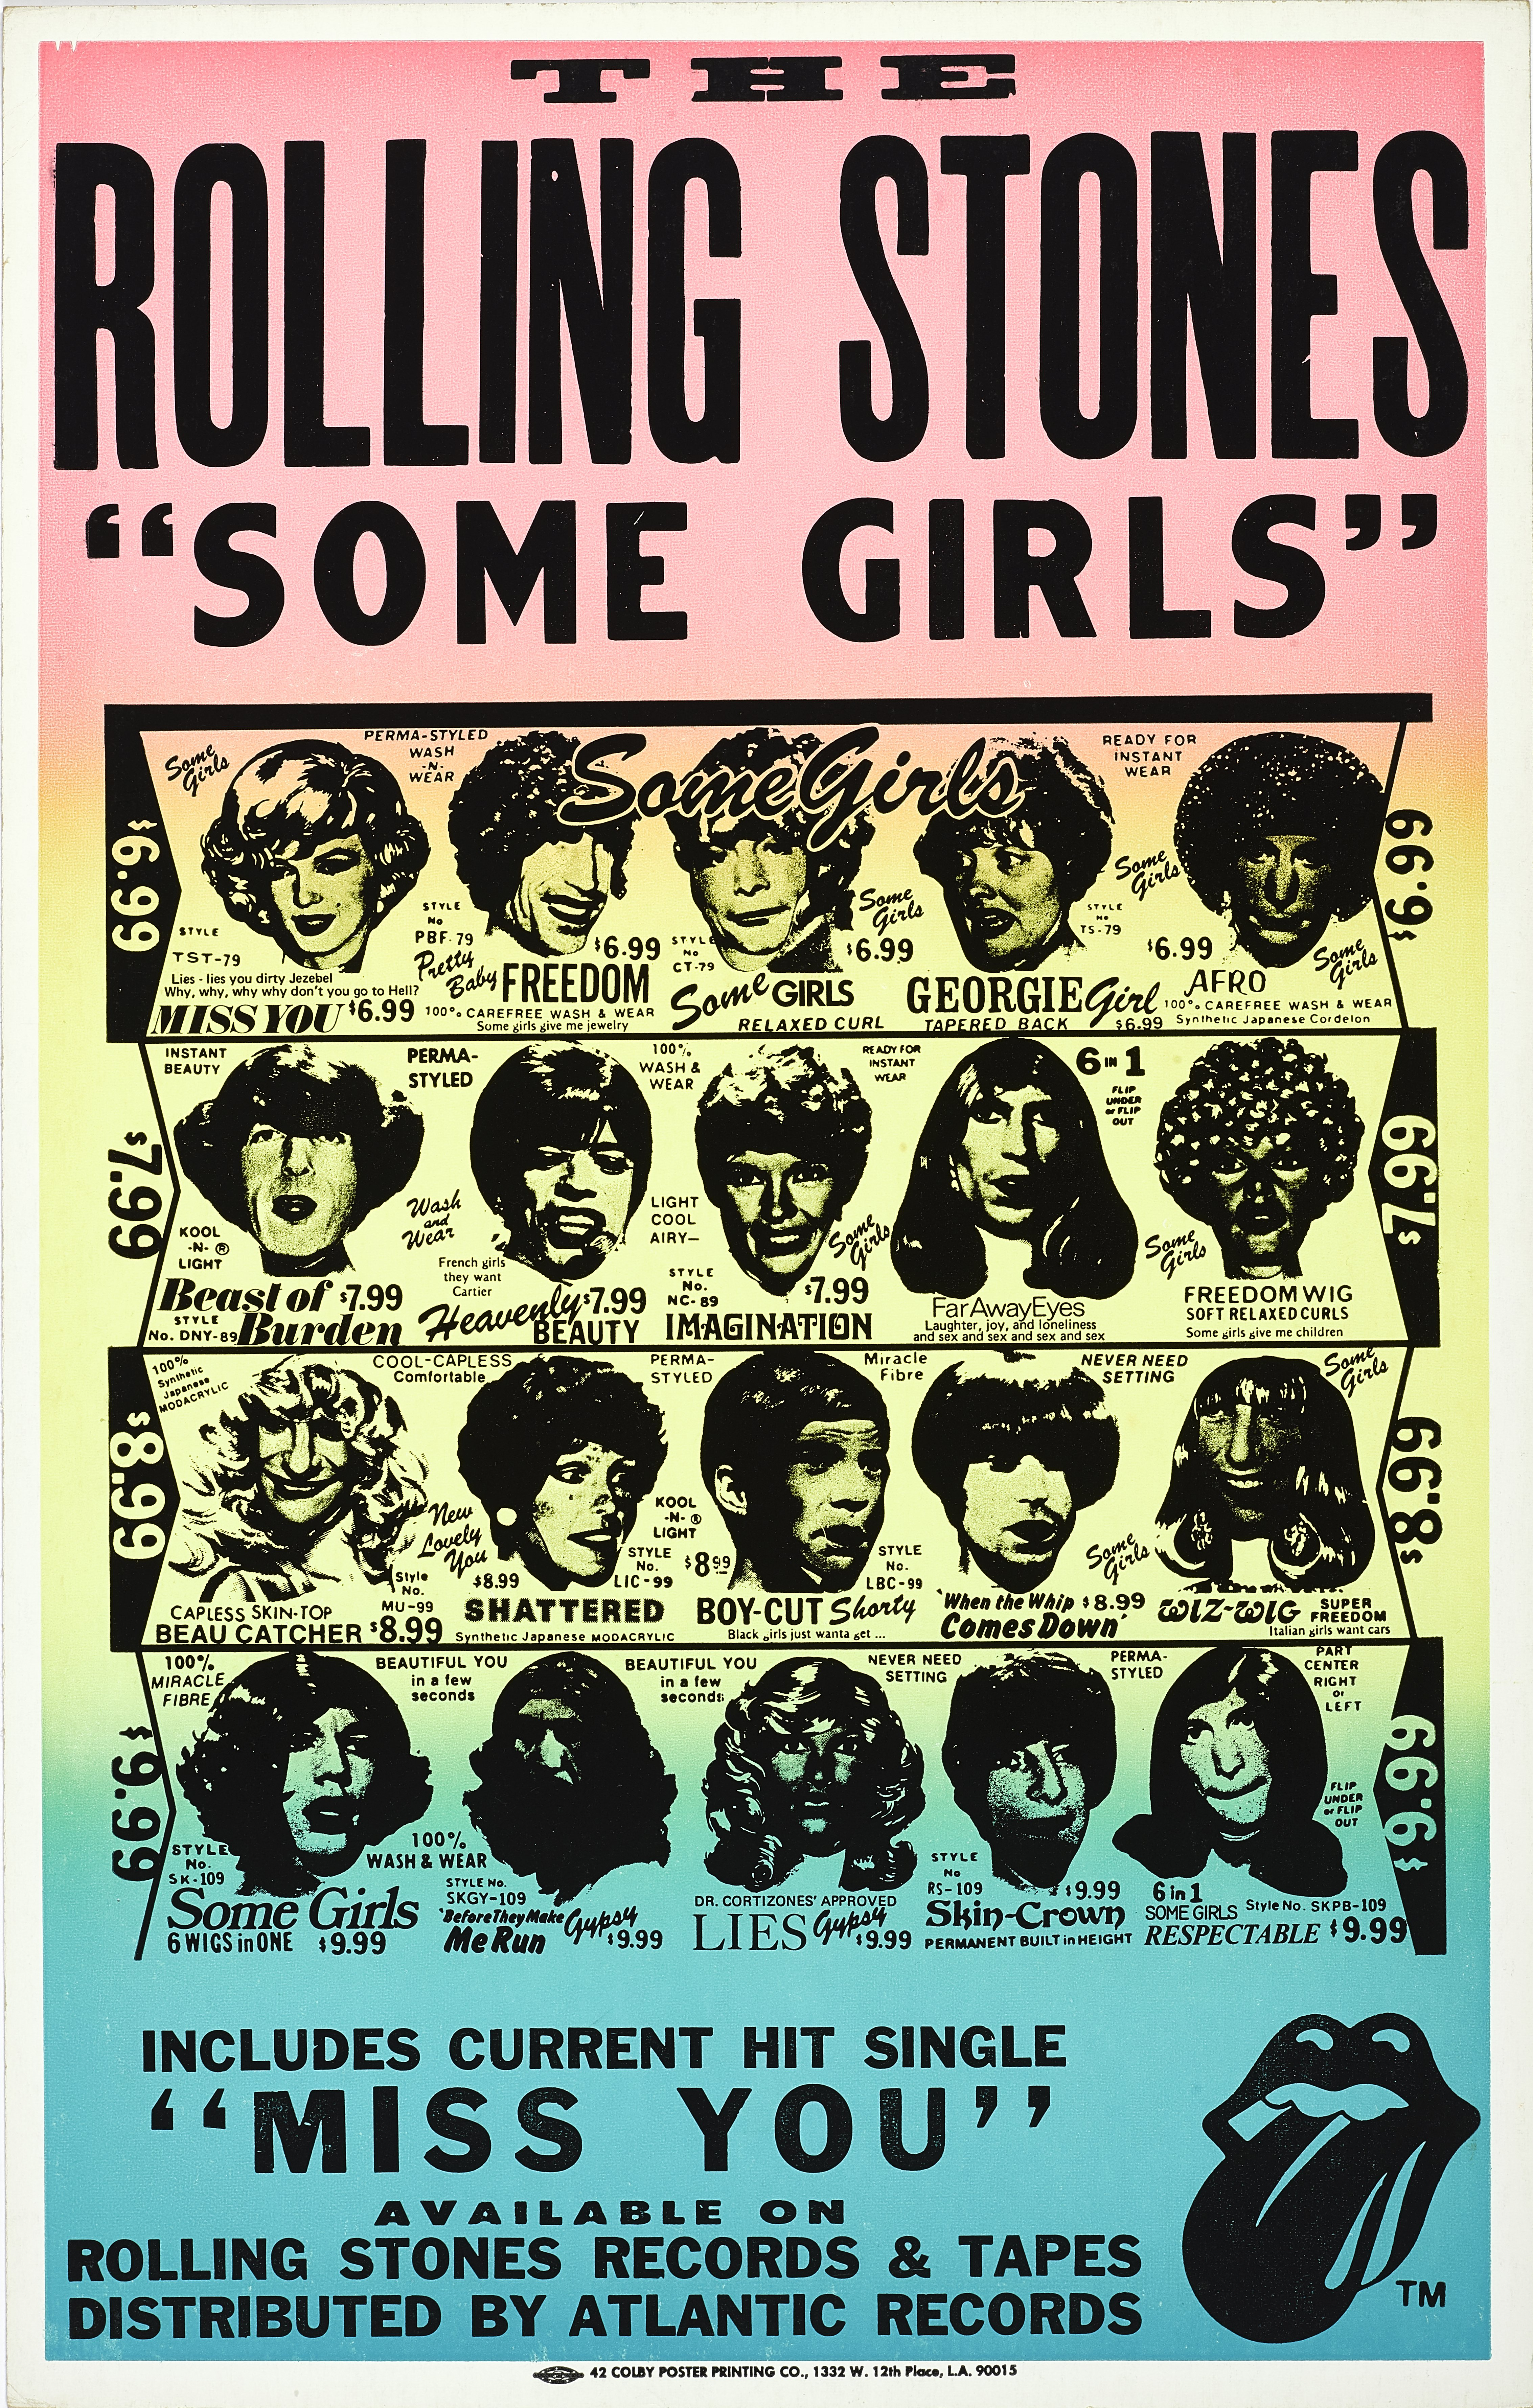 Lot 33 - A Rolling Stones Promotional Poster For The Album Some Girls